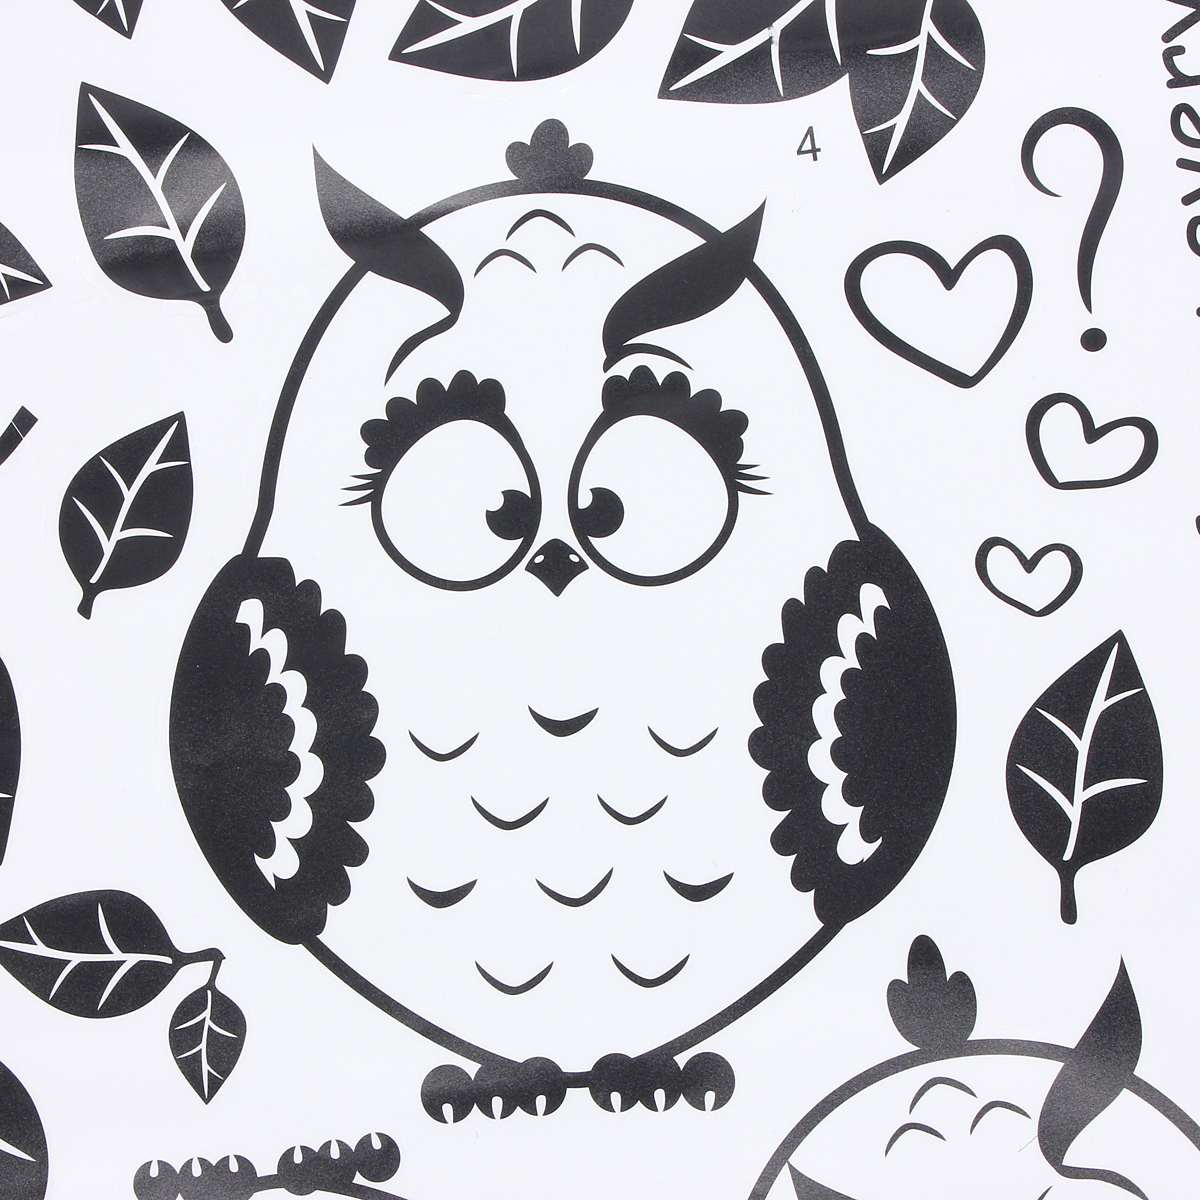 owl birds branch removable vinyl kids baby home decor mural wall stickers decal ebay. Black Bedroom Furniture Sets. Home Design Ideas